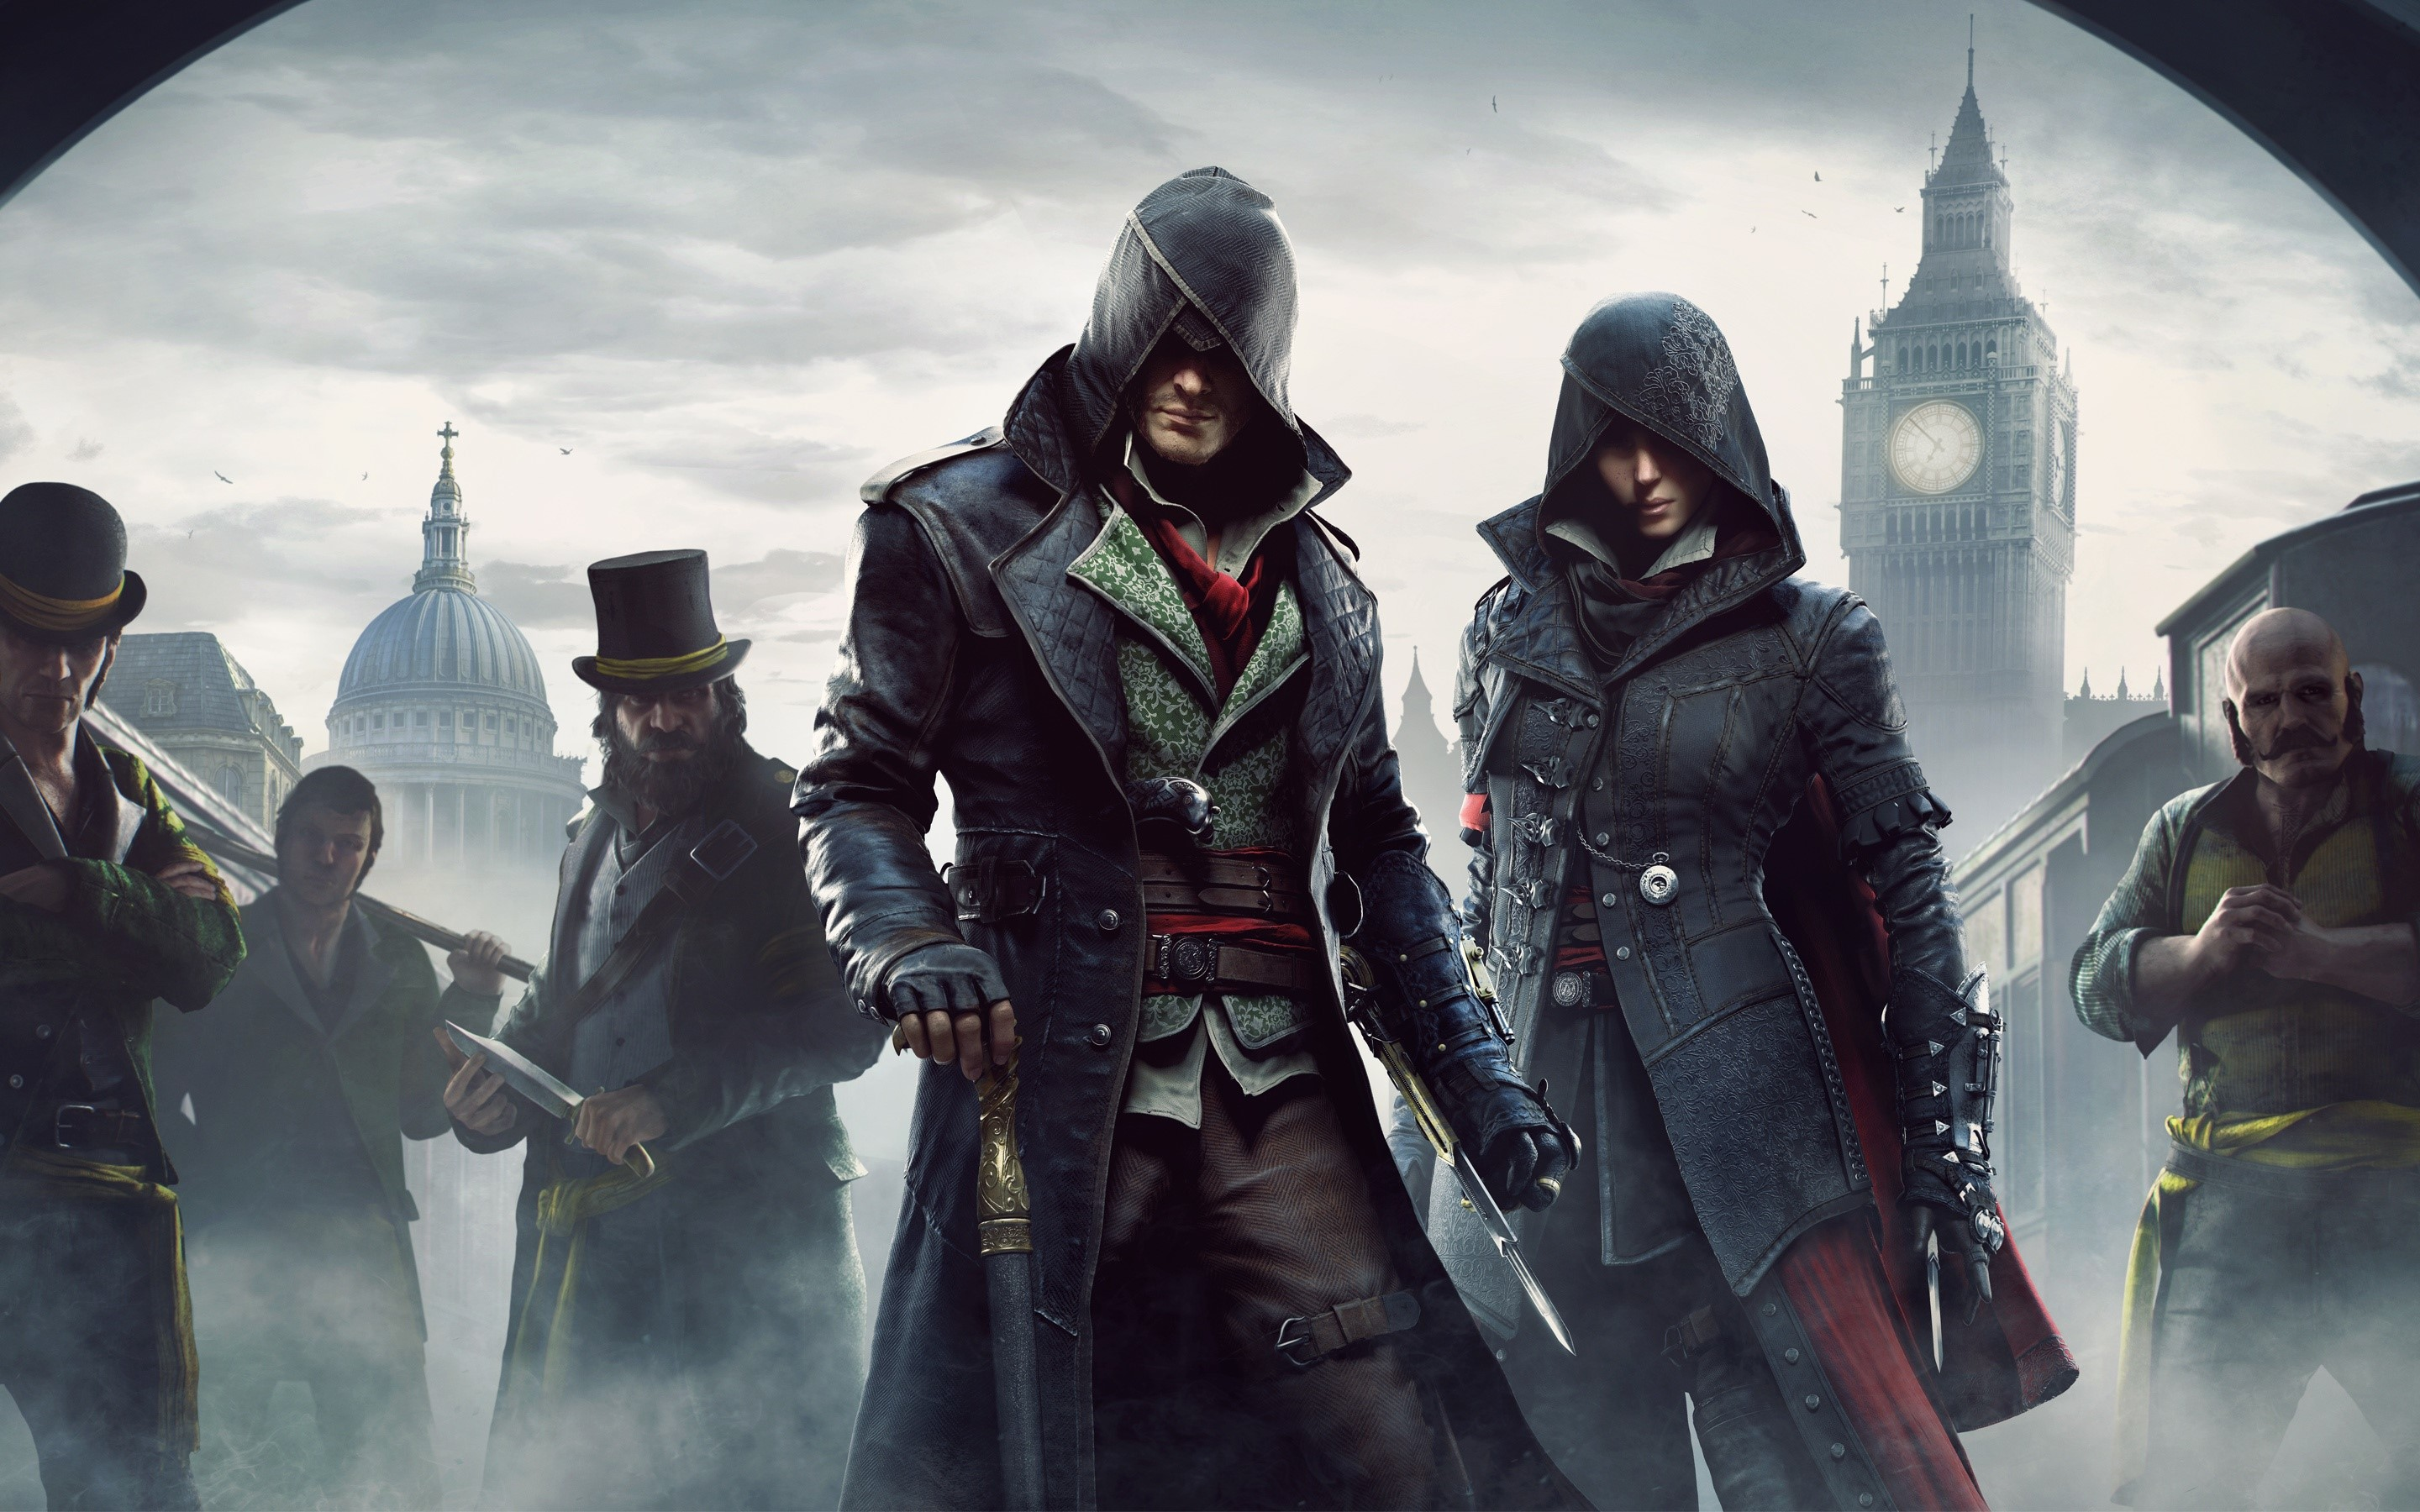 Fondos de pantalla Personajes de Assassins Creed Syndicate